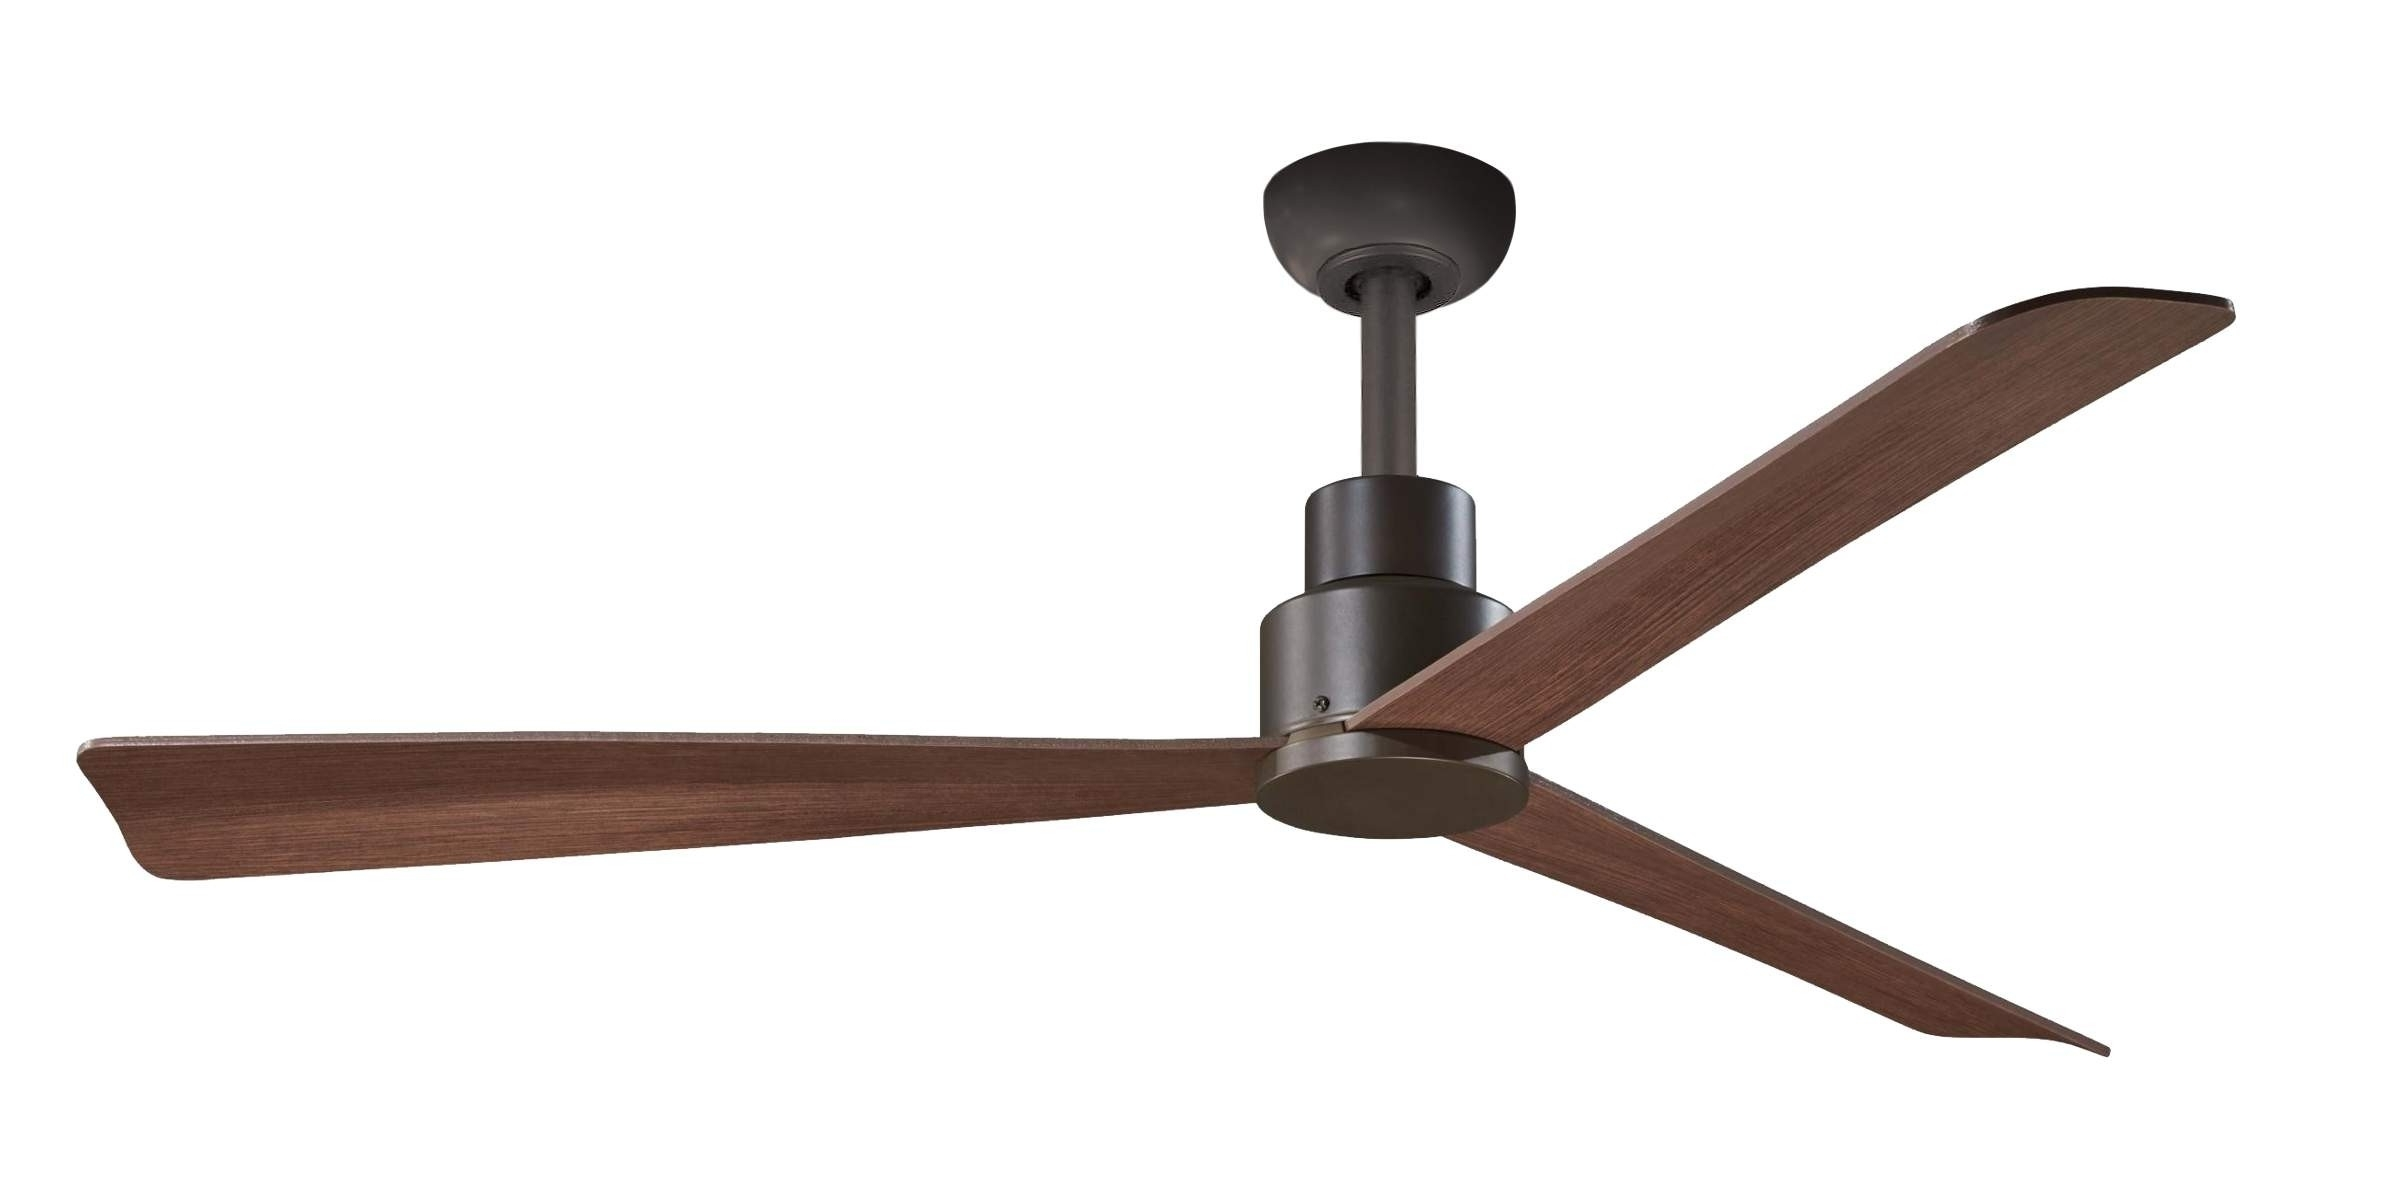 Outdoor Ceiling Fans For Canopy In Most Recent Minka Aire Simple Ceiling Fan Model F787 Orb In Oil Rubbed Bronze (View 7 of 20)